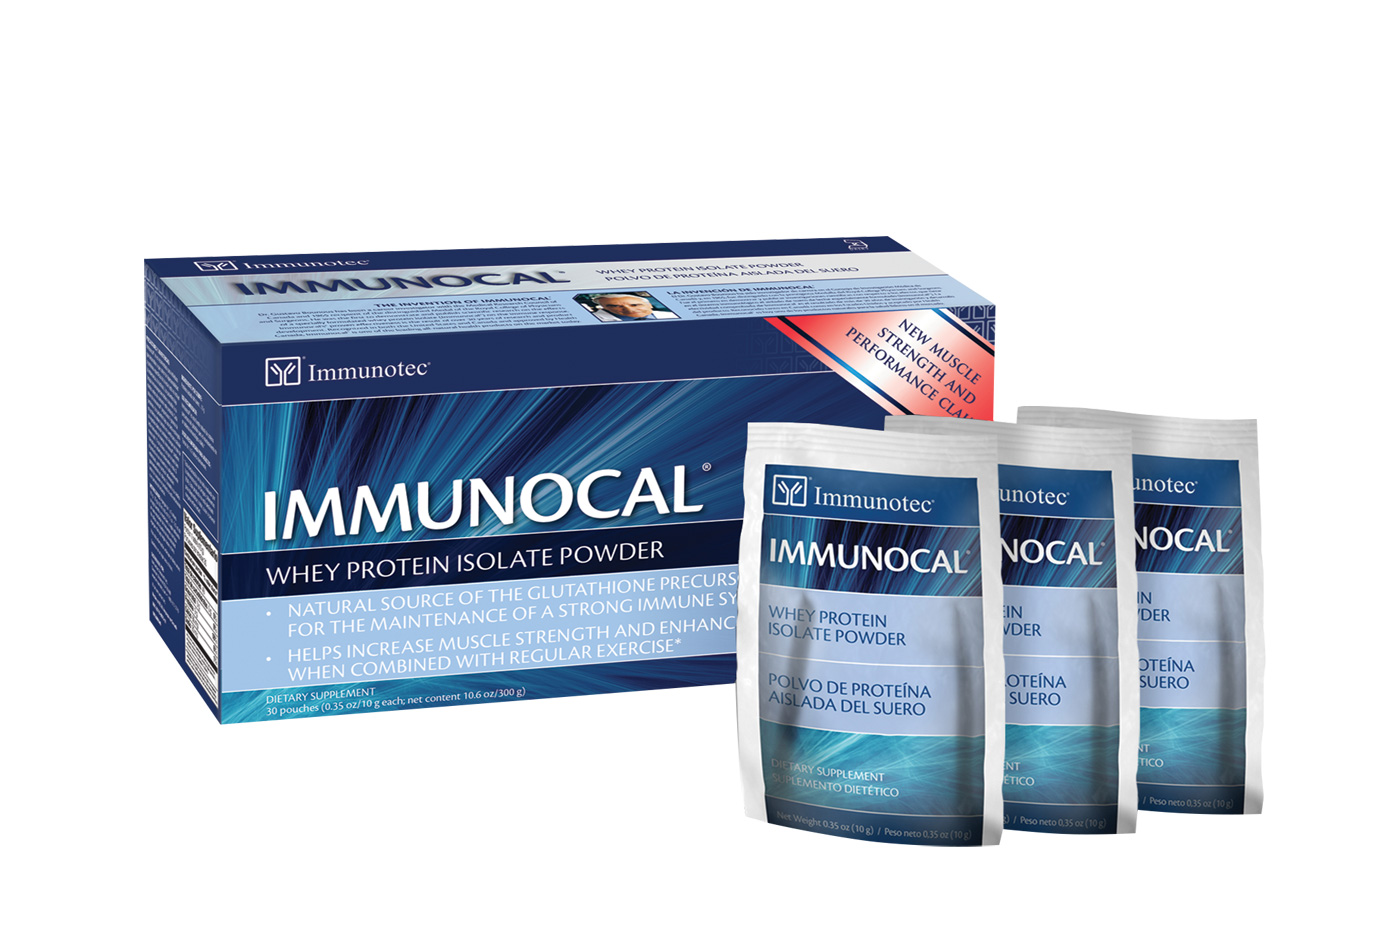 Immunocal, healthy life, optimizing immune system